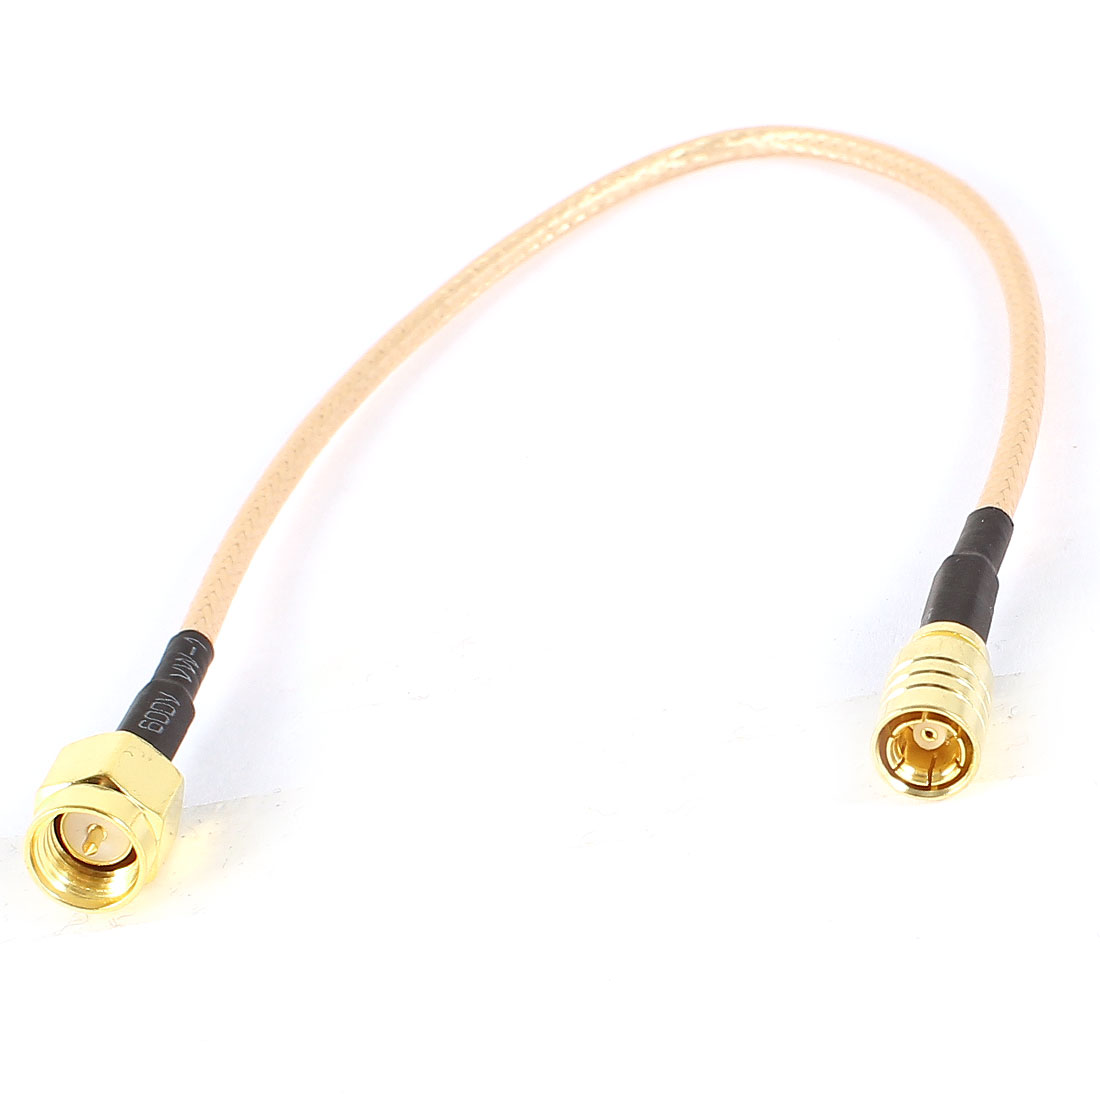 RG316 Coaxial Jumper Cable SMA Male to SMB Female Jack Adapter 8.5 Inches 21.5cm